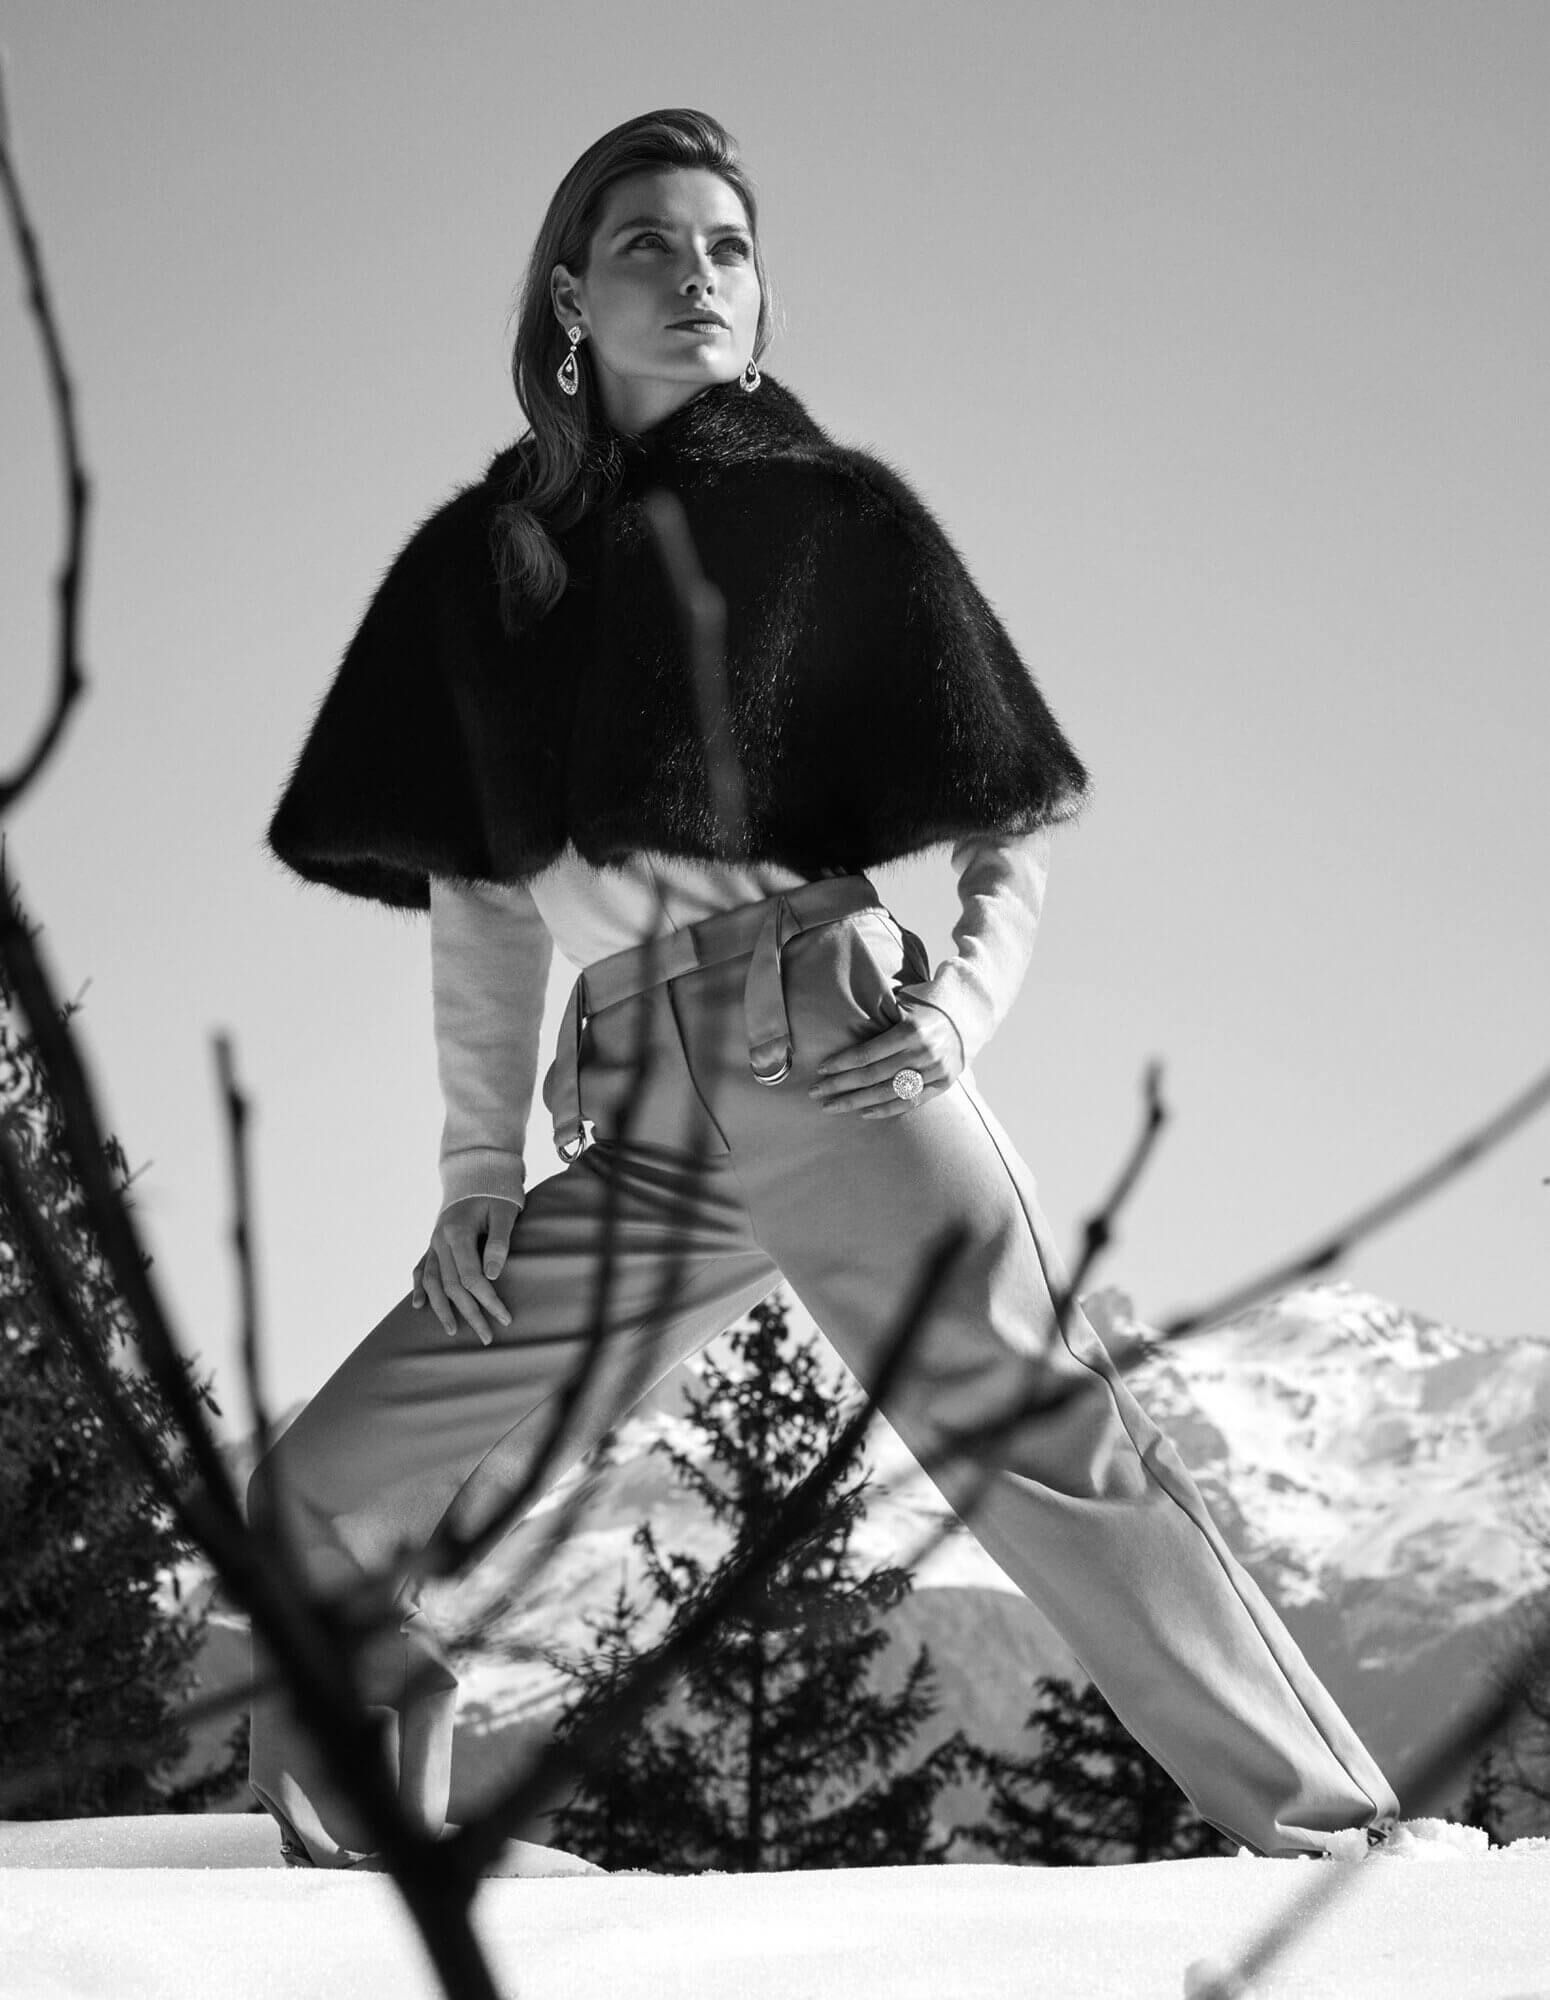 A lady on a ski slope dressed in a fur cape and wearing diamond Luna earrings and a diamond Swirl ring